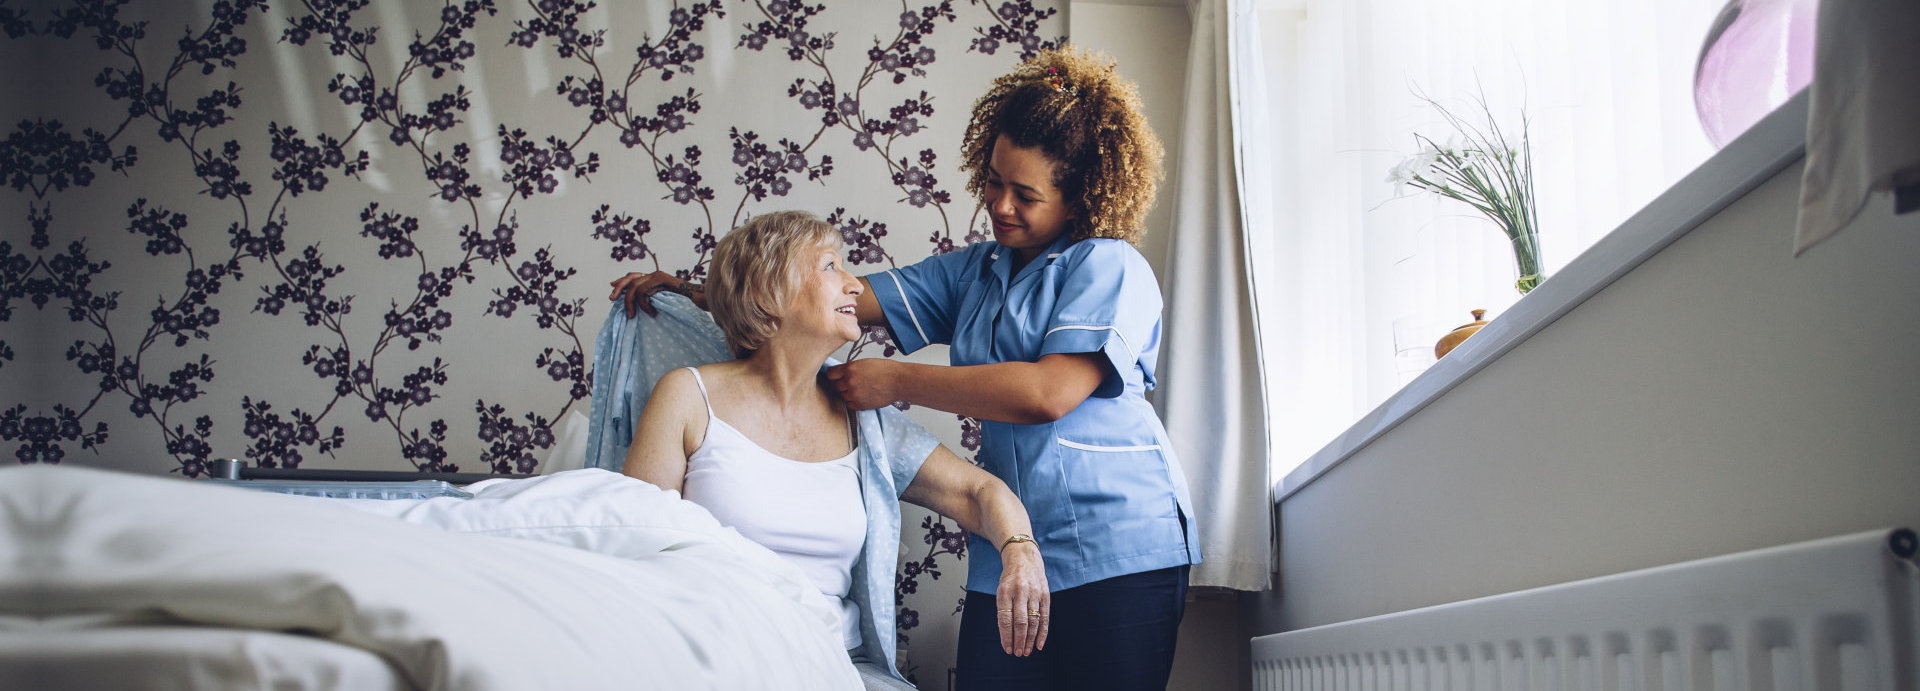 caregiver assisting old woman in dressing